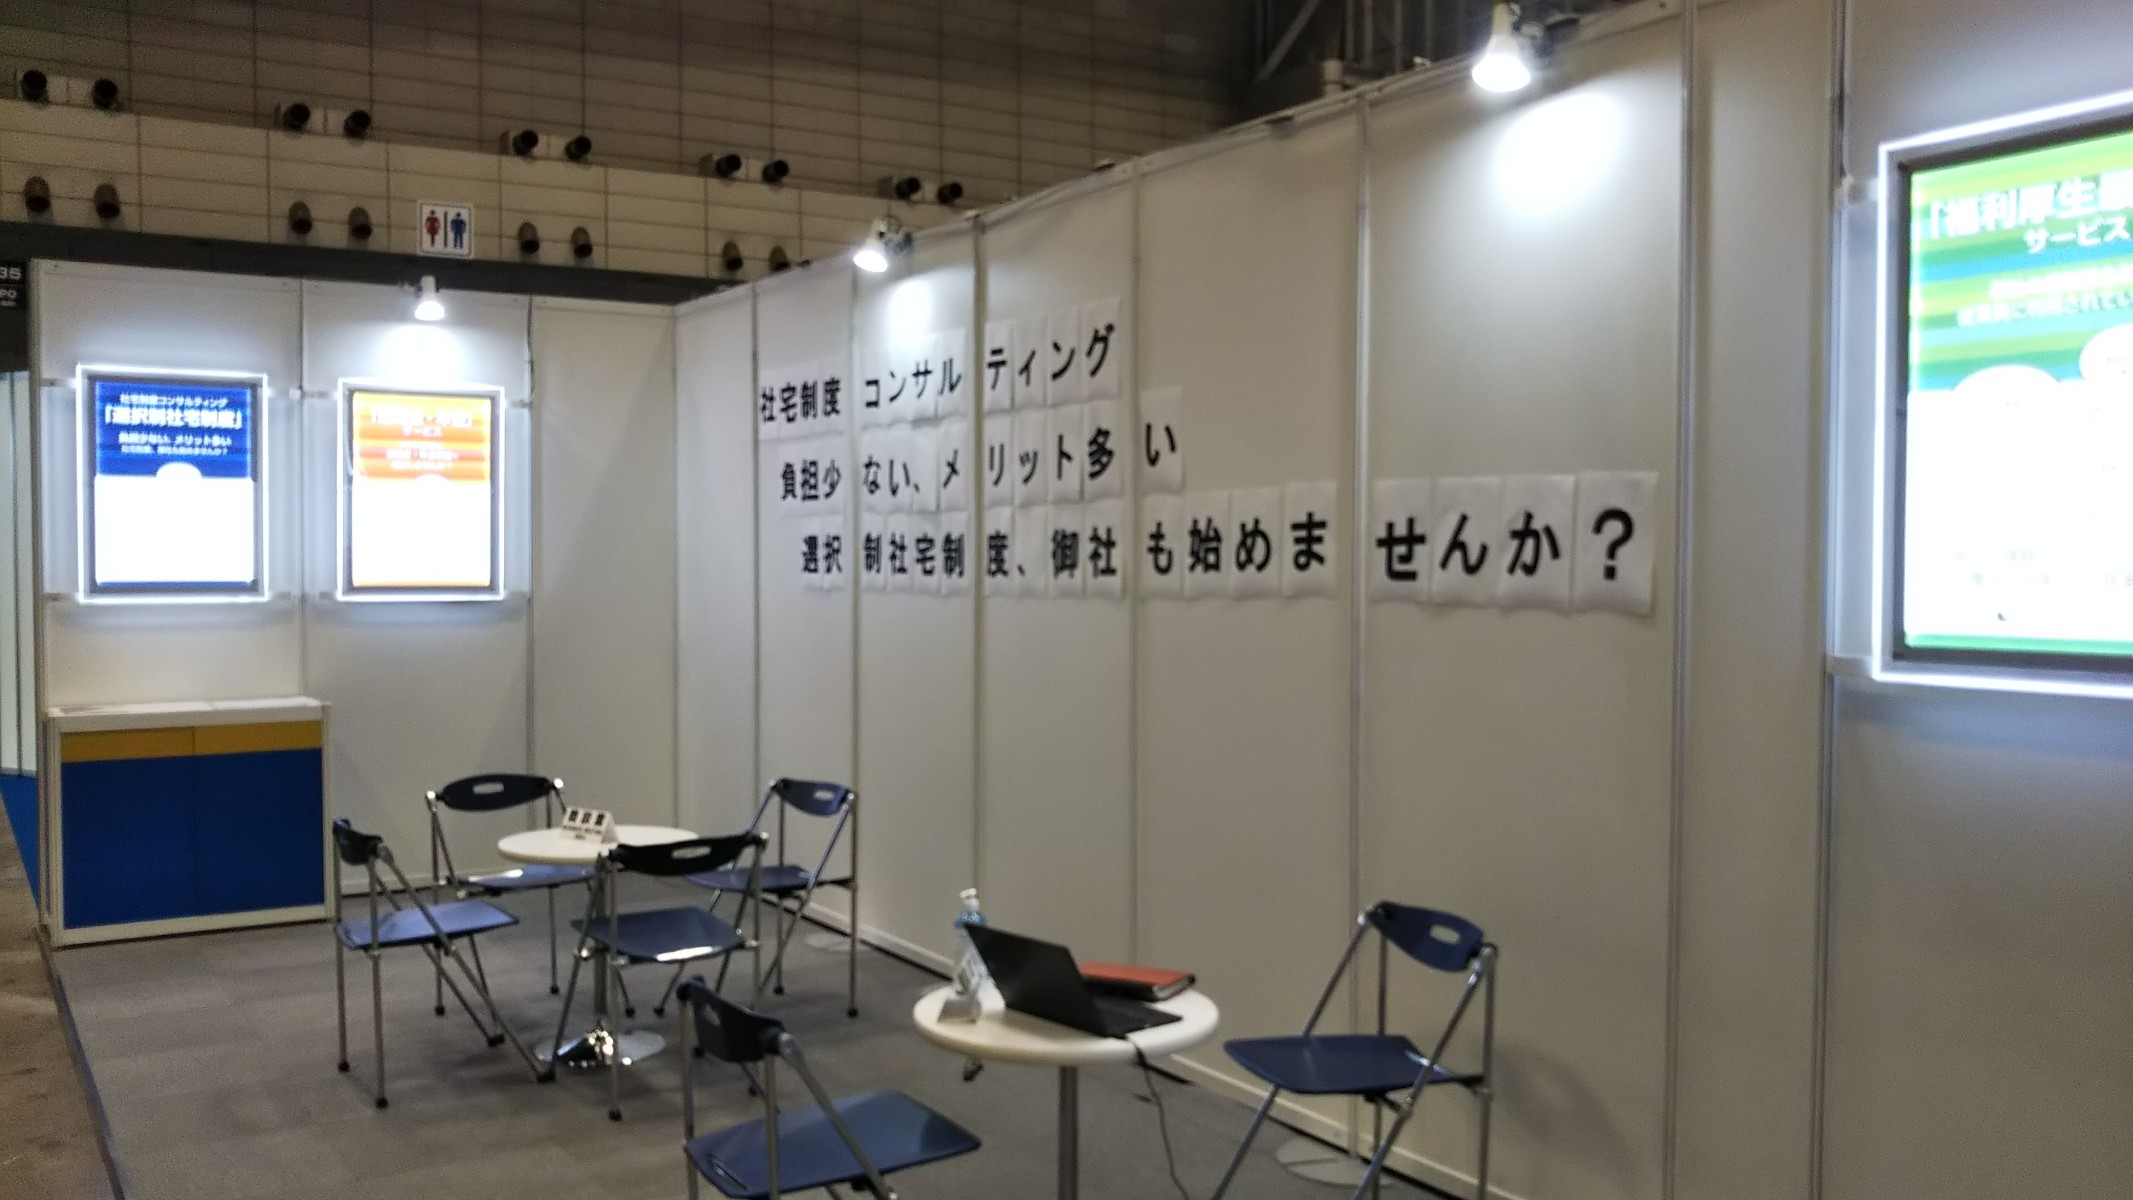 HREXPO3 - 第8回 HR EXPO に出展しました!